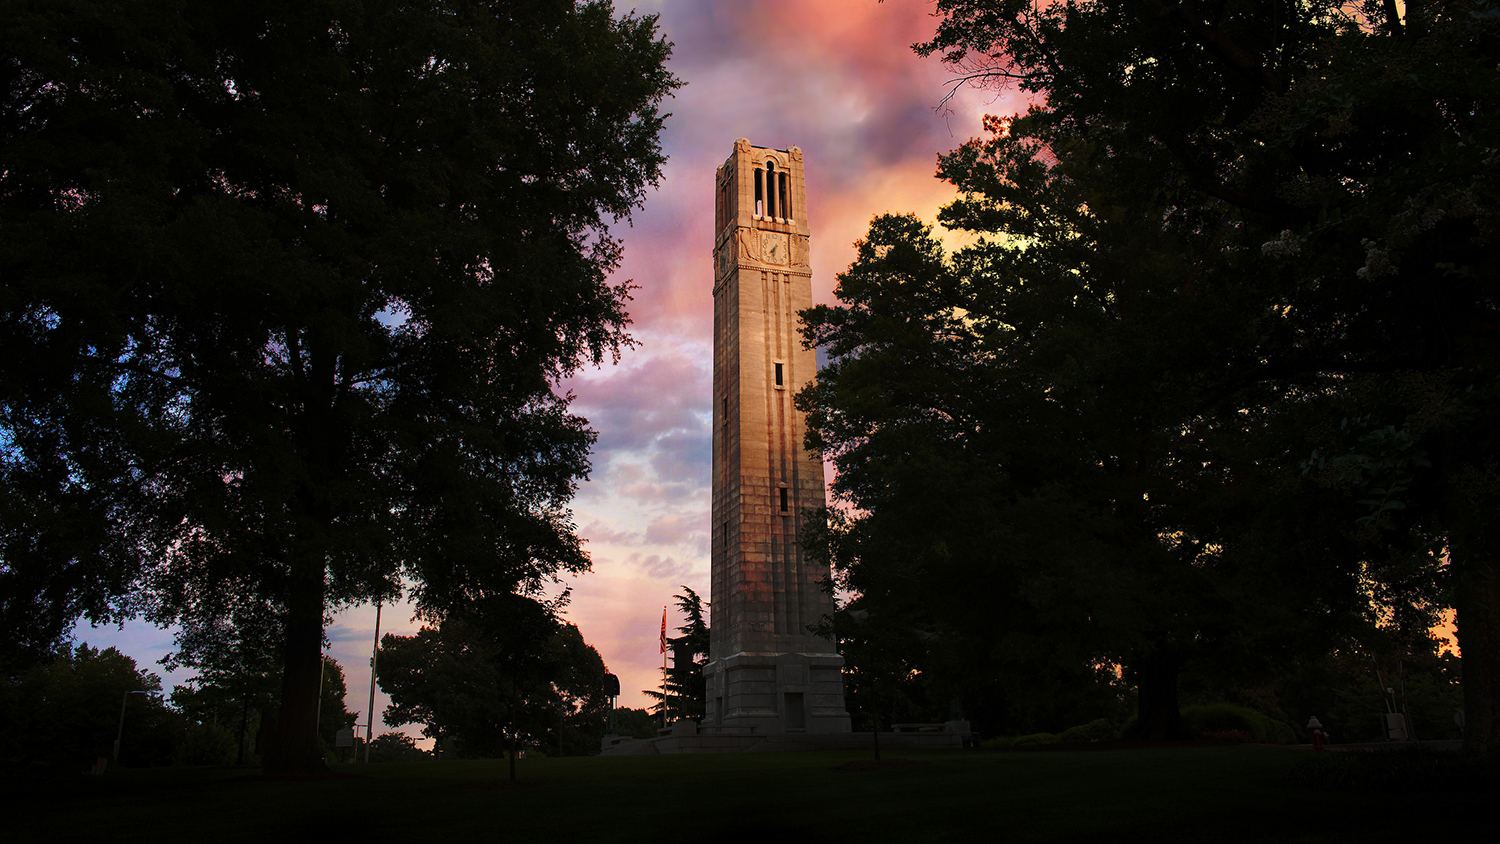 NC State Belltower at dusk